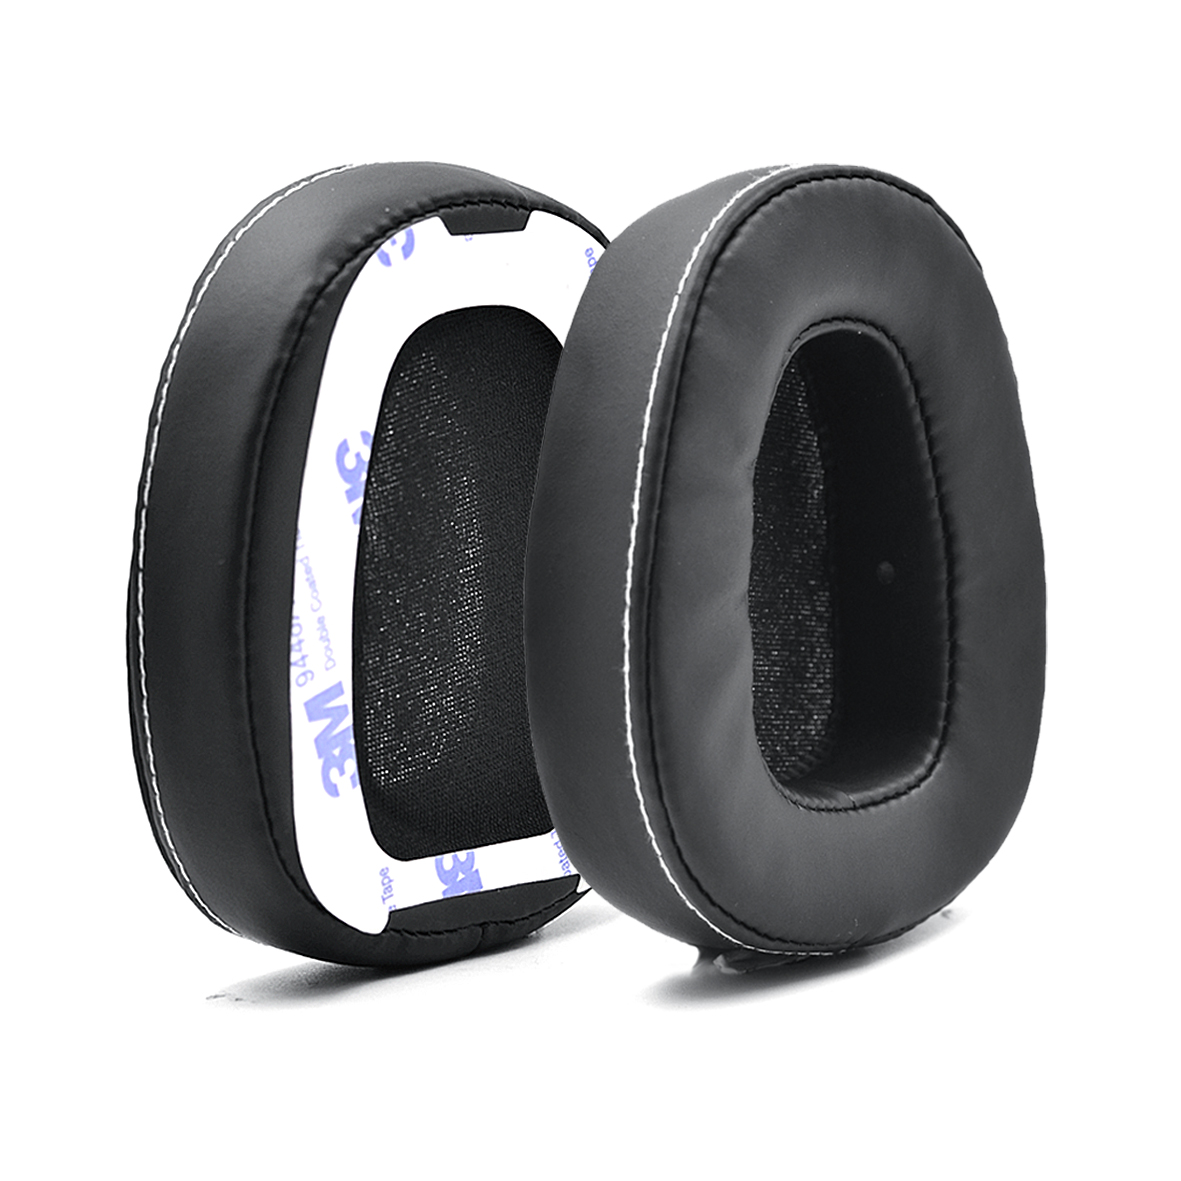 best quality for watch purchase genuine Details about Black Ear pads cushion with tape for Skullcandy Crusher Over  Ear Wired Headphone